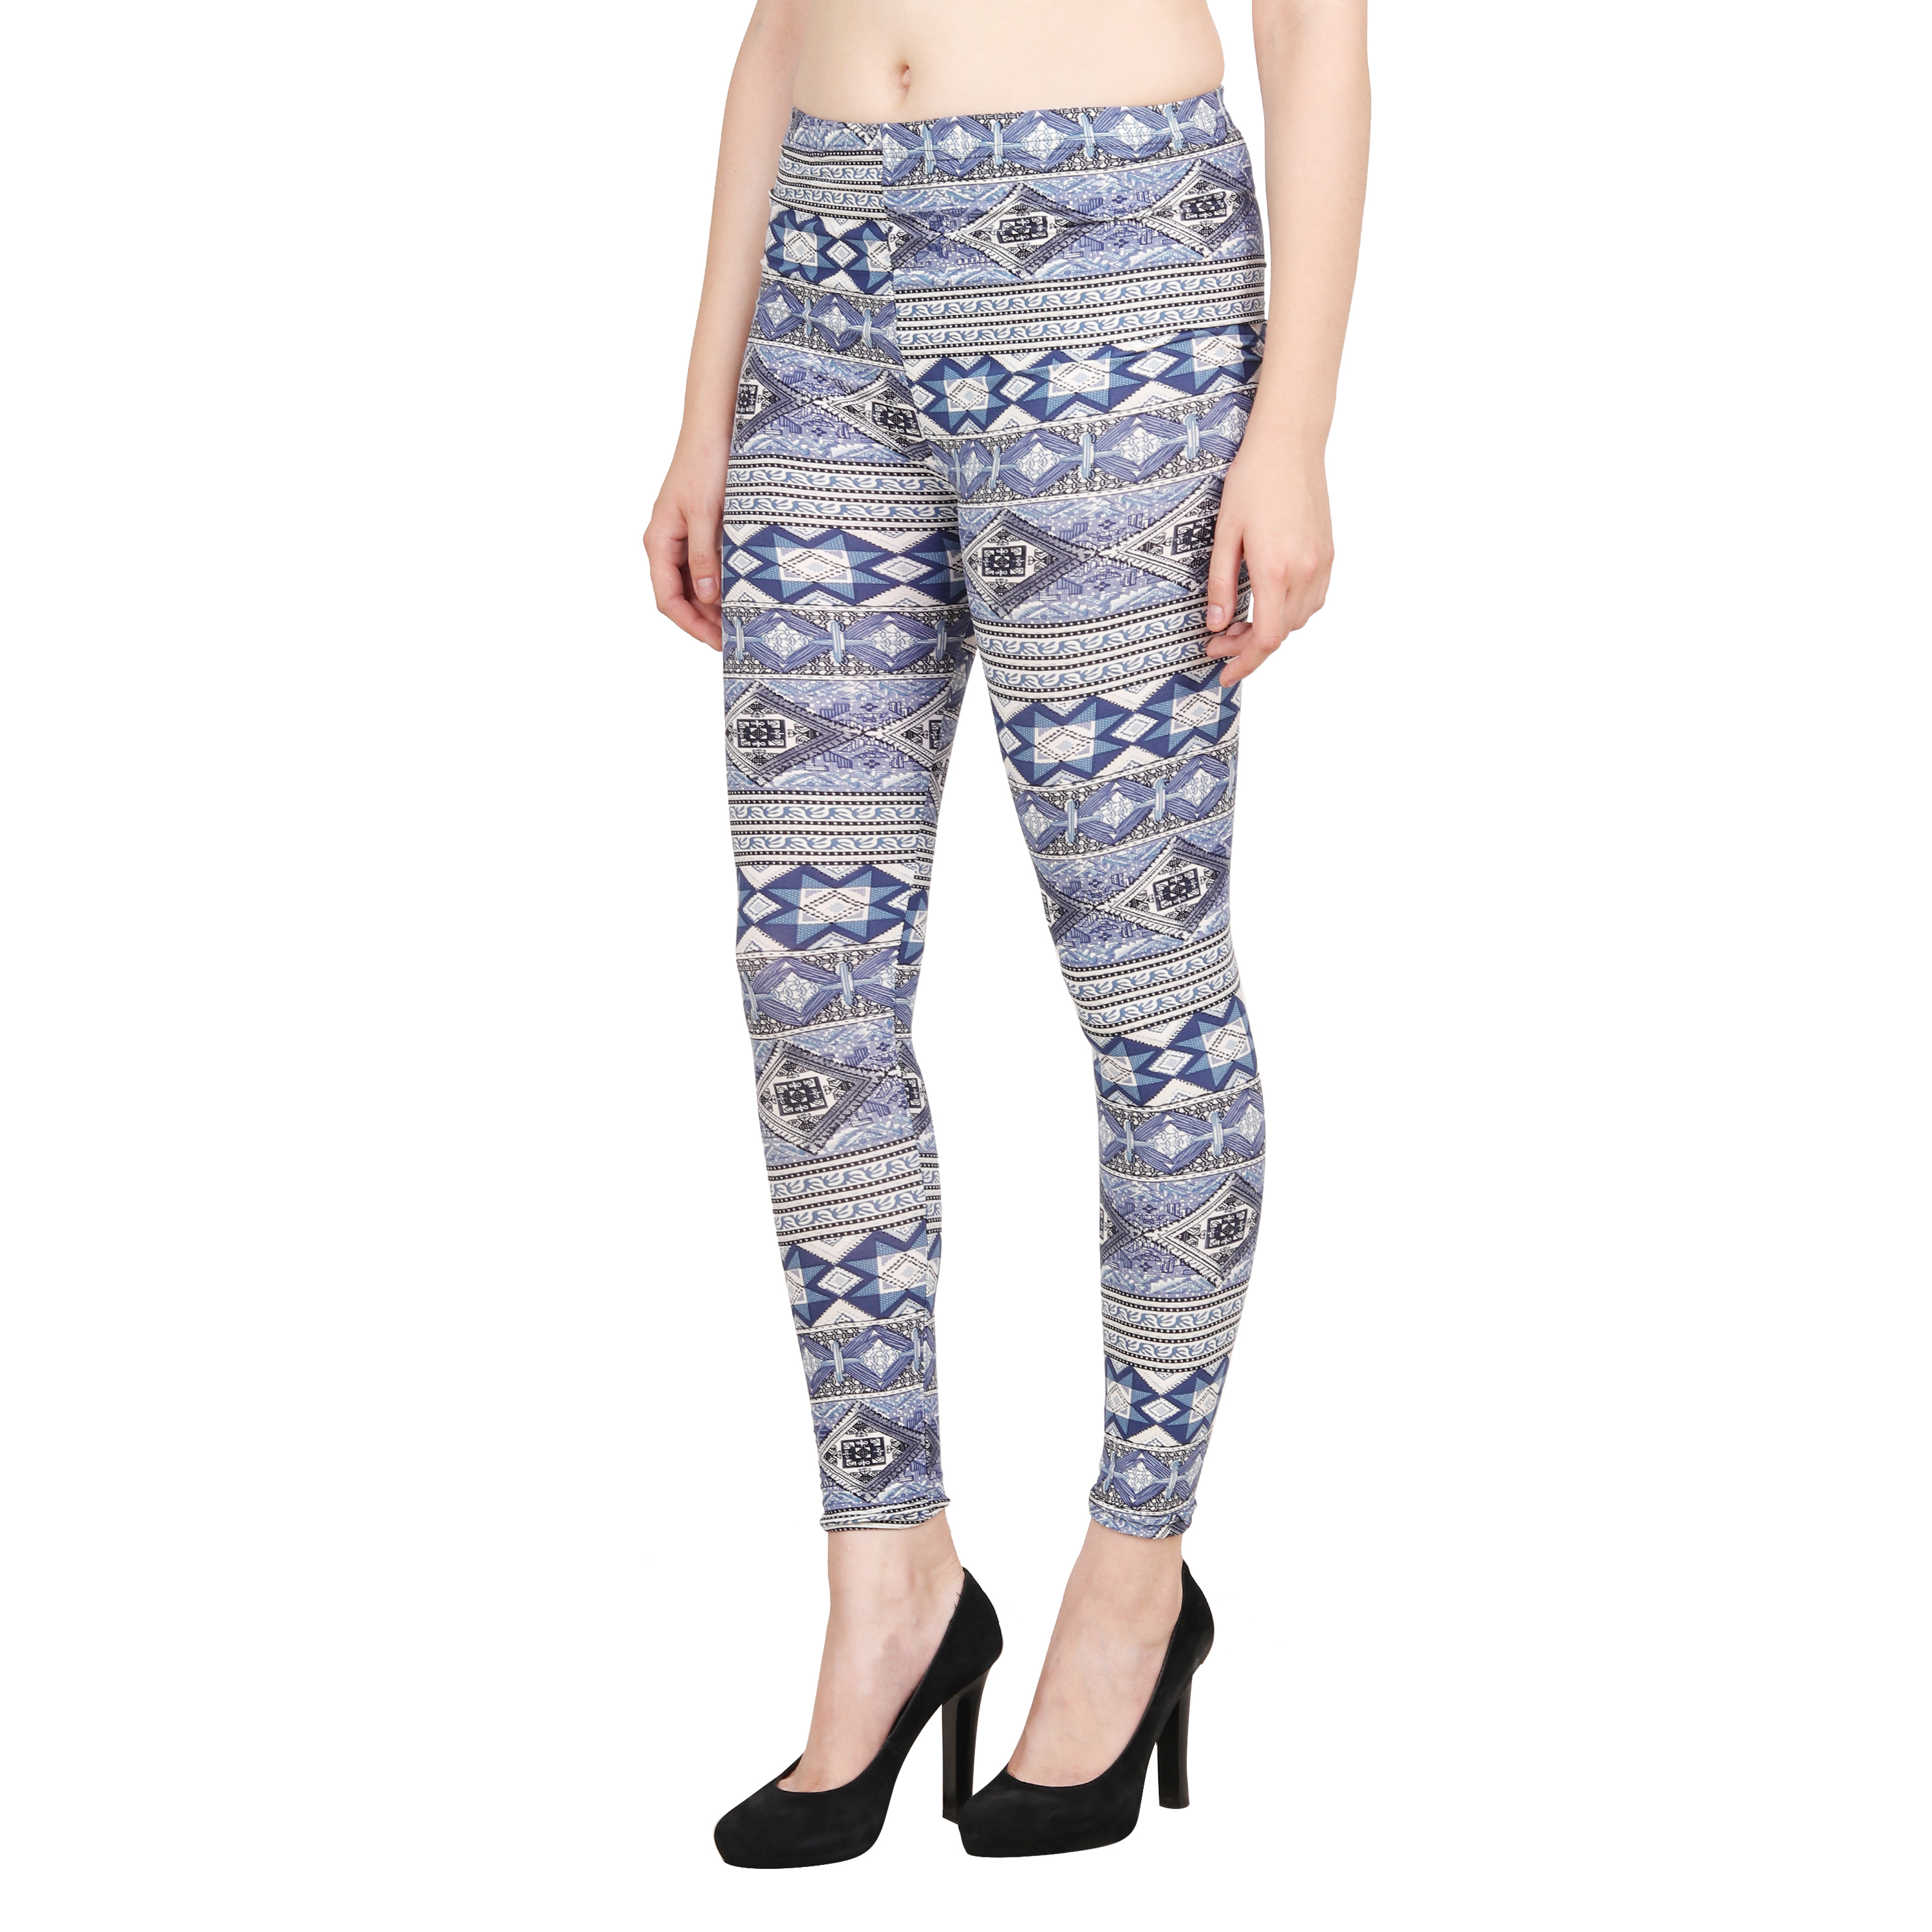 Aiyra Women's Blue Printed stretchable Jegging